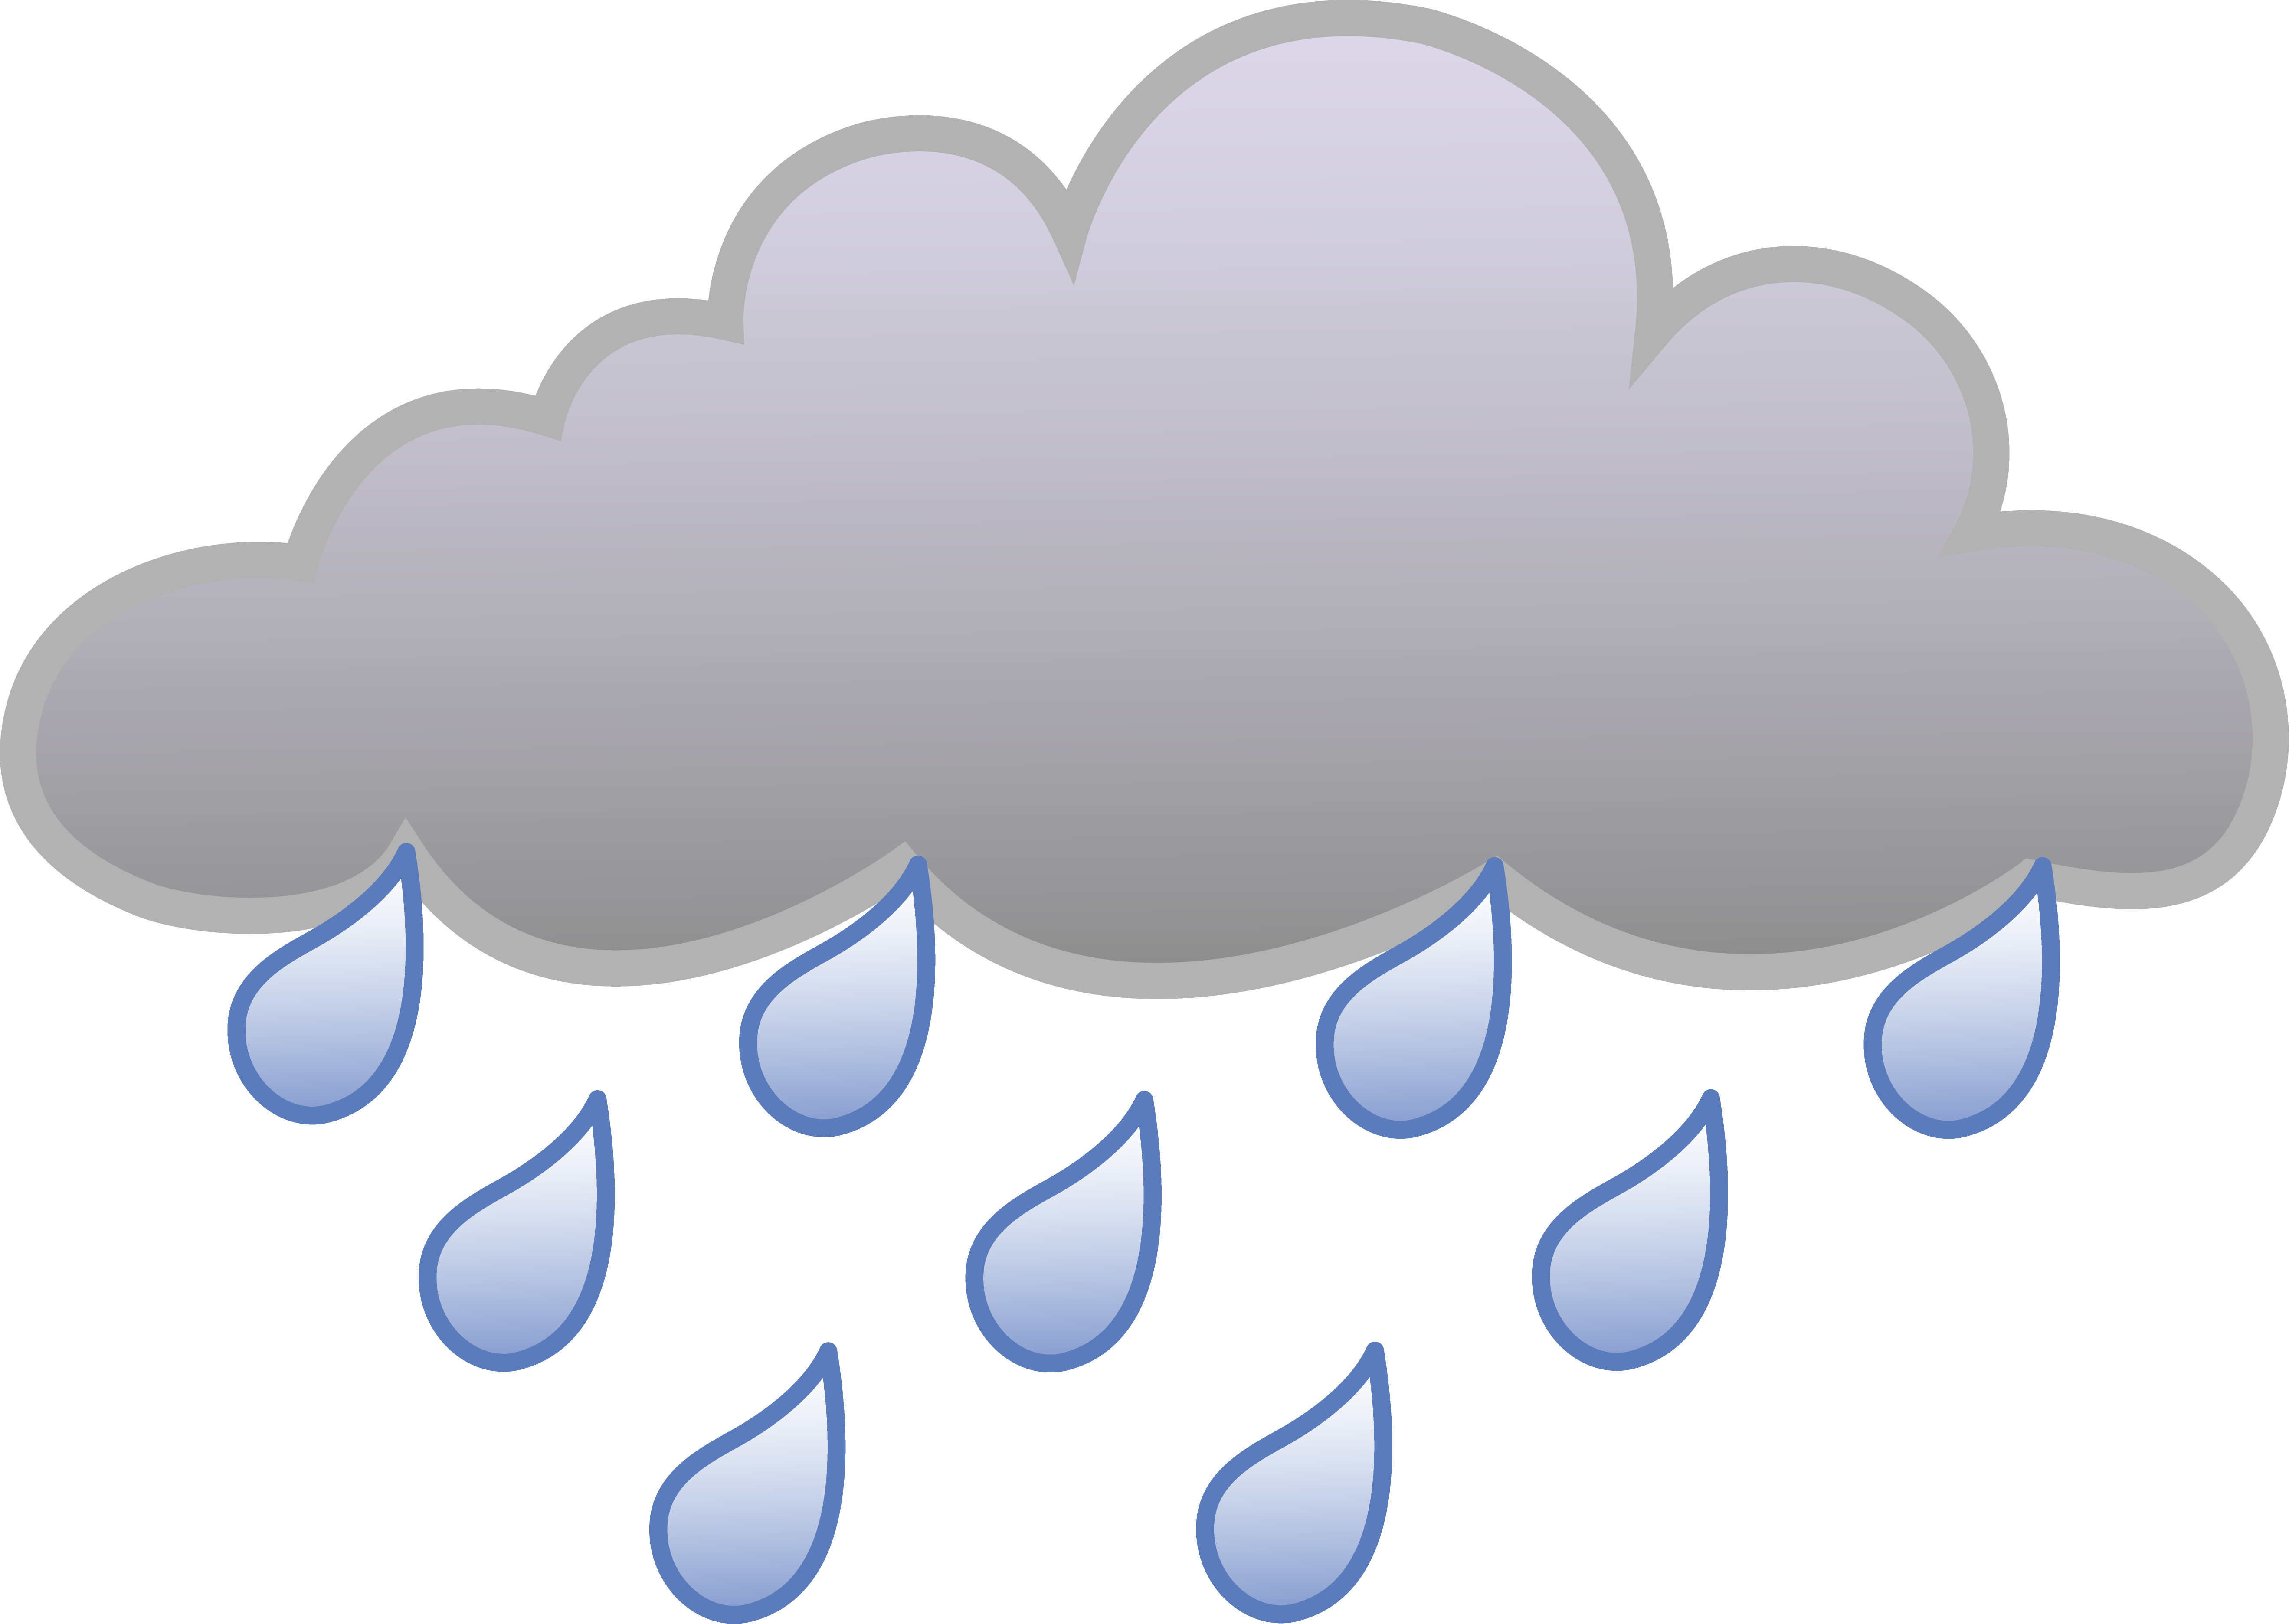 Thunder clipart weather symbol Free Cloud Rain And Free